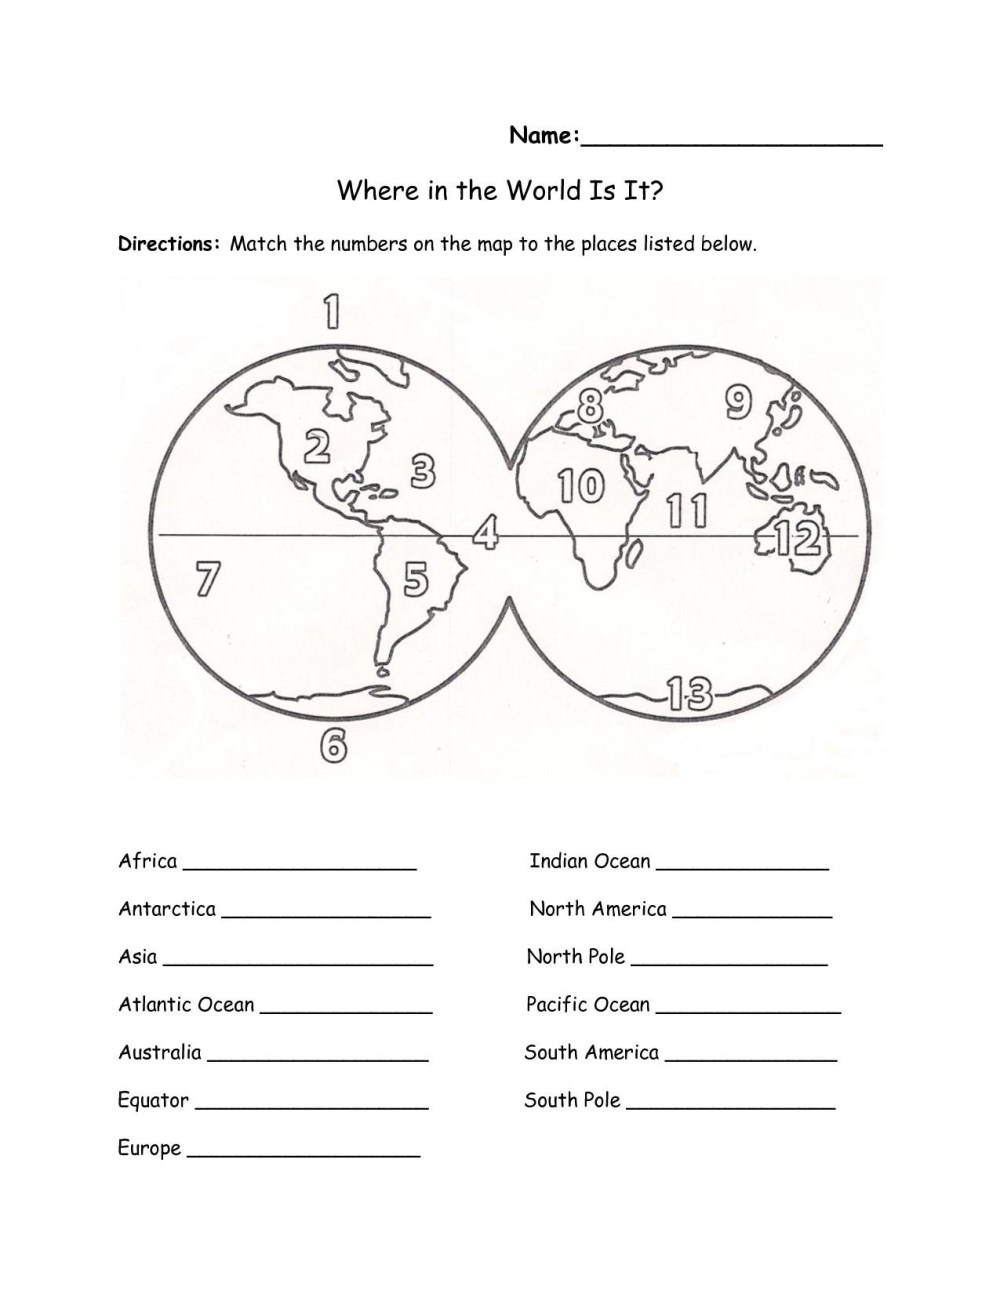 medium resolution of 3rd Grade Longitude And Latitude Worksheets   Printable Worksheets and  Activities for Teachers